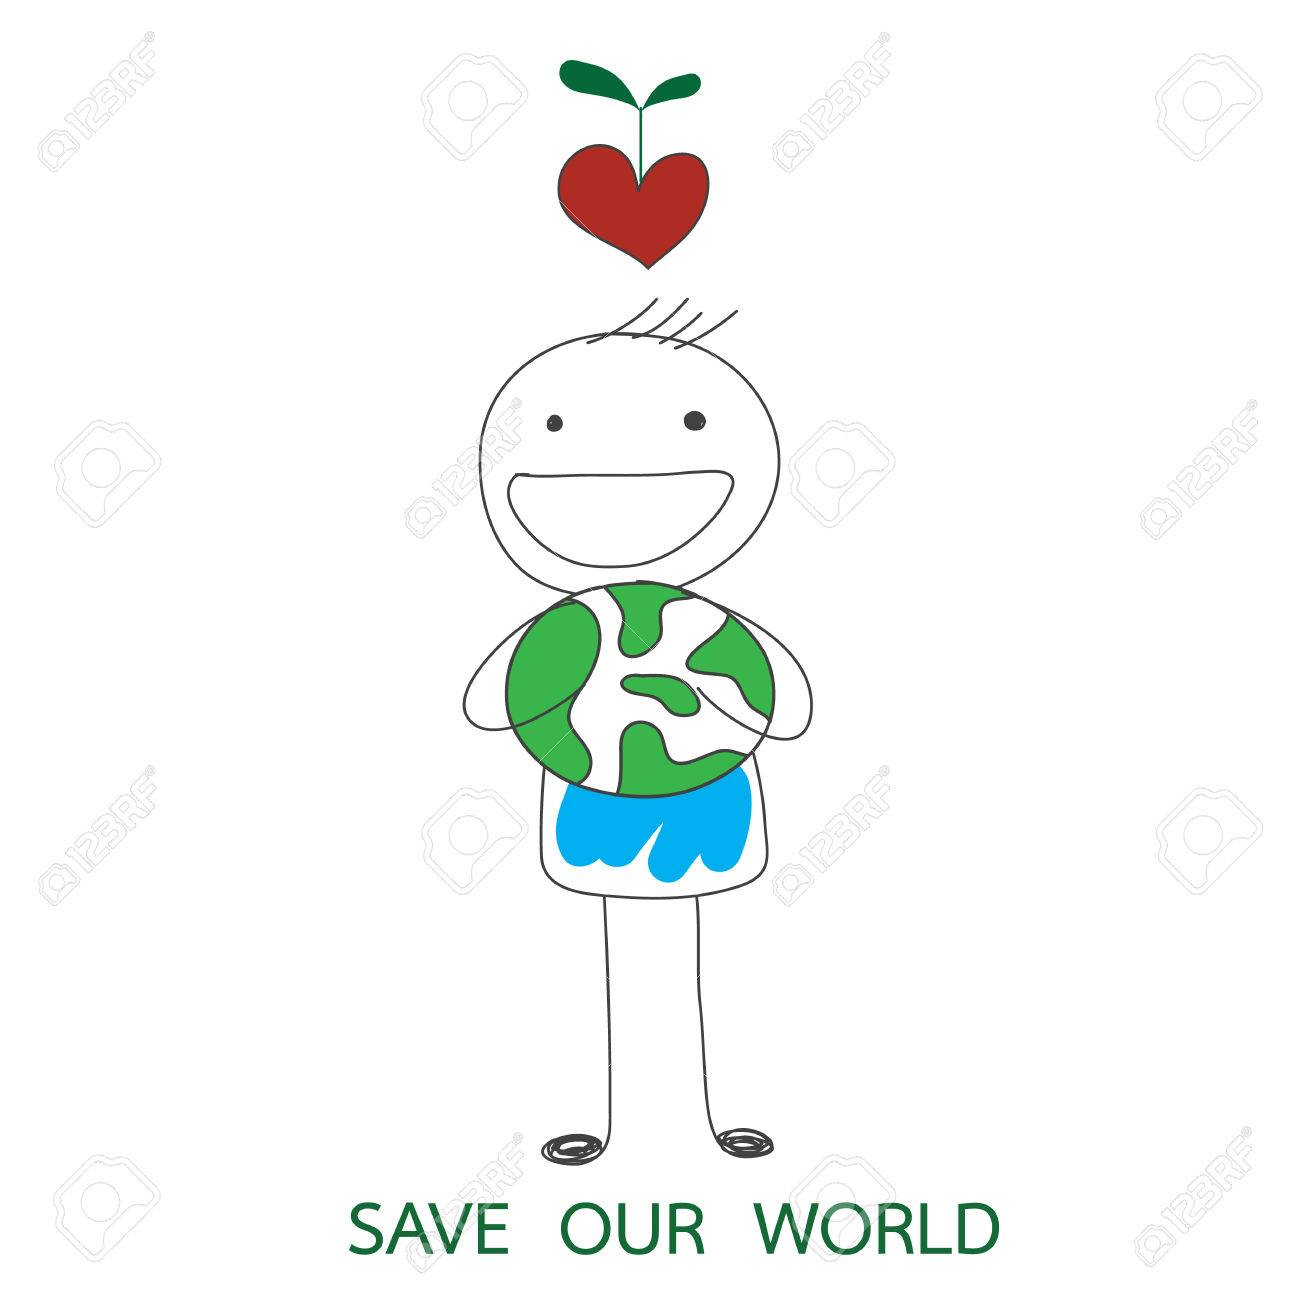 Man Holding Green World And Red Heart With Growing Plant On His